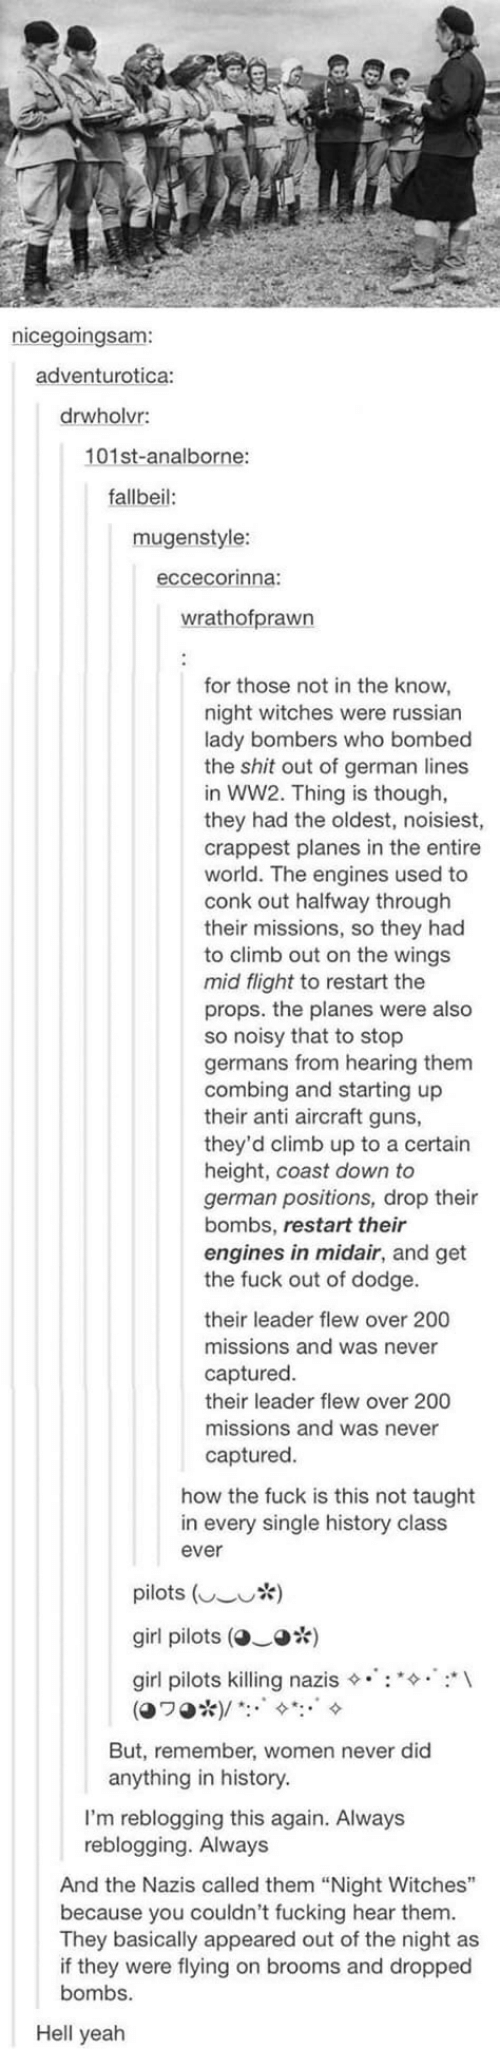 """Fucking, Guns, and Shit: nicegoingsam:  adventurotica:  drwholvr:  101st-analborne:  fallbeil:  mugenstyle:  eccecorinna:  wrathofprawn  for those not in the know  night witches were russian  lady bombers who bombed  the shit out of german lines  in WW2. Thing is though,  they had the oldest, noisiest,  crappest planes in the entire  world. The engines used to  conk out halfway through  their missions, so they had  to climb out on the wings  mid flight to restart the  props. the planes were also  so noisy that to stop  germans from hearing them  combing and starting up  their anti aircraft guns,  they'd climb up to a certain  height, coast down to  german positions, drop their  bombs, restart their  engines in midair, and get  the fuck out of dodge.  their leader flew over 200  missions and was never  captured.  their leader flew over 200  missions and was never  captured  how the fuck is this not taught  in every single history class  ever  pilots ( *)  girl pilots (  o*)  girl pilots killing nazis  (O70* ) / :  But, remember, women never did  anything in history.  I'm reblogging this again. Always  reblogging. Always  And the Nazis called them """"Night Witches""""  because you couldn't fucking hear them.  They basically appeared out of the night as  if they were flying on brooms and dropped  bombs.  Hell yeah"""